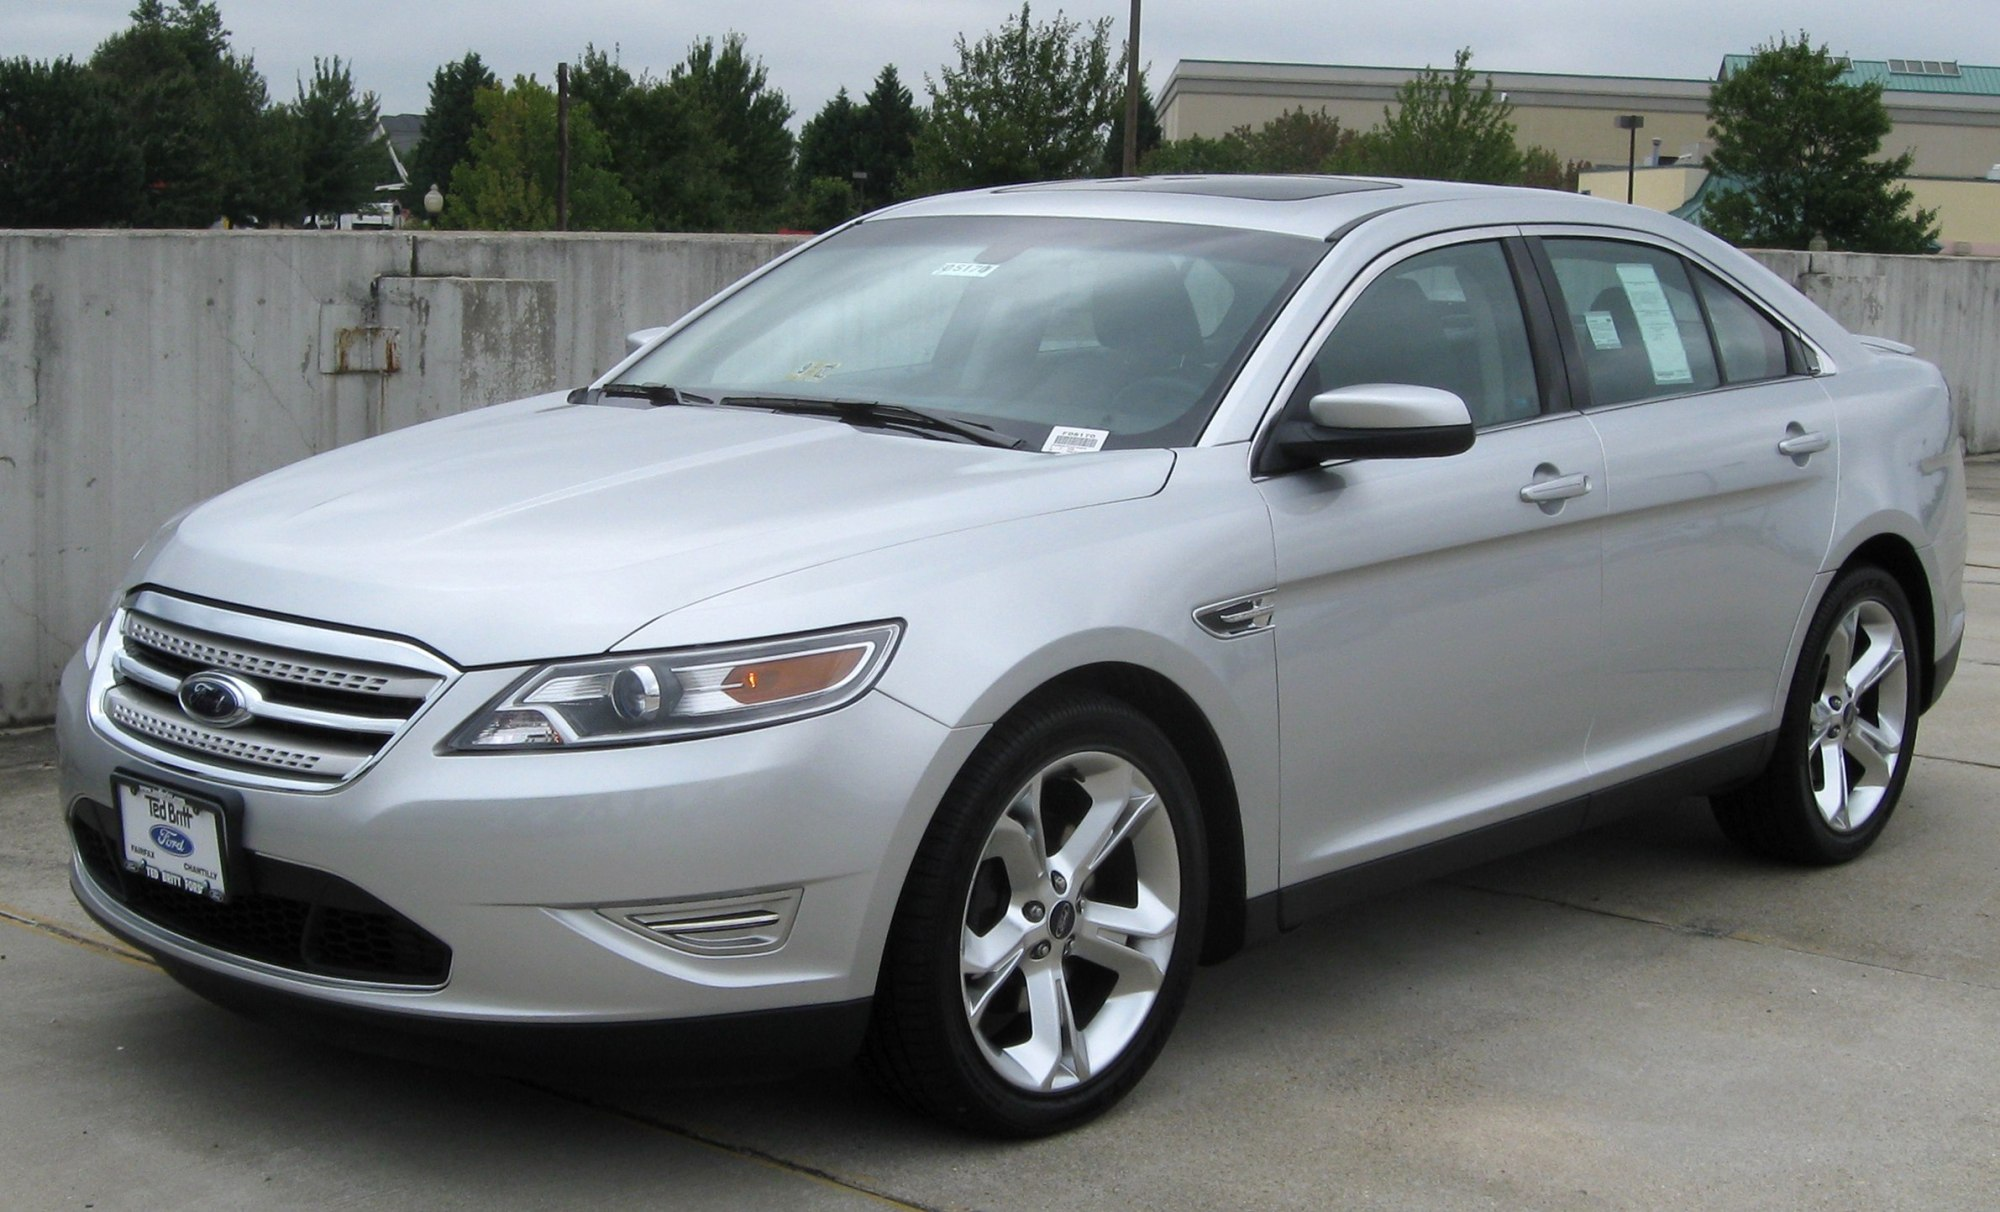 hight resolution of ford taurus sho the complete information and online sale with free pin 99 ford taurus ax4s diagram service ax4n transmission on pinterest